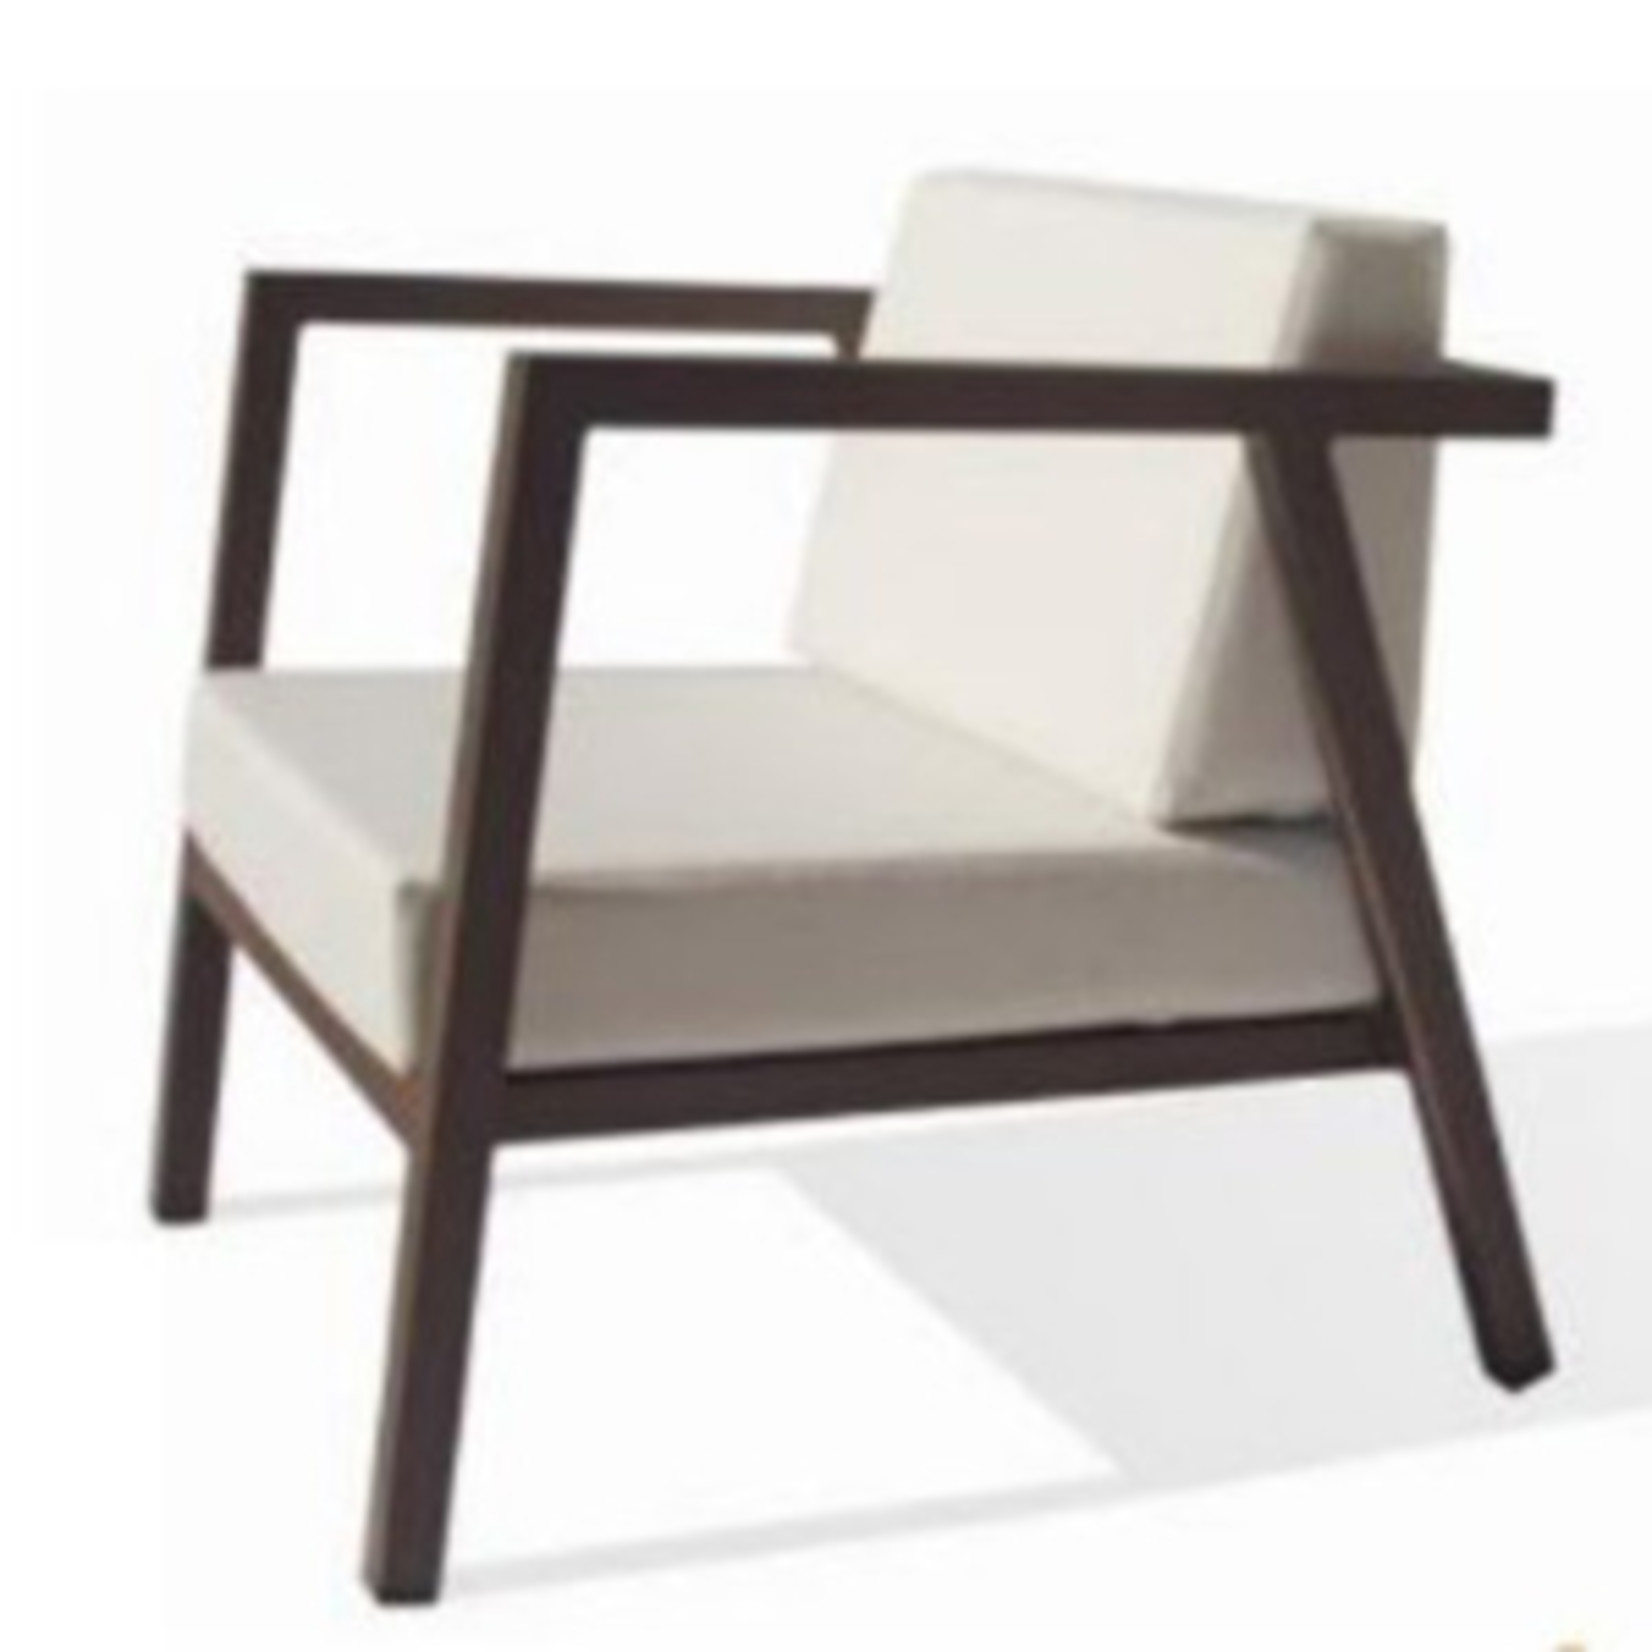 Harmony Studio Acana Chair